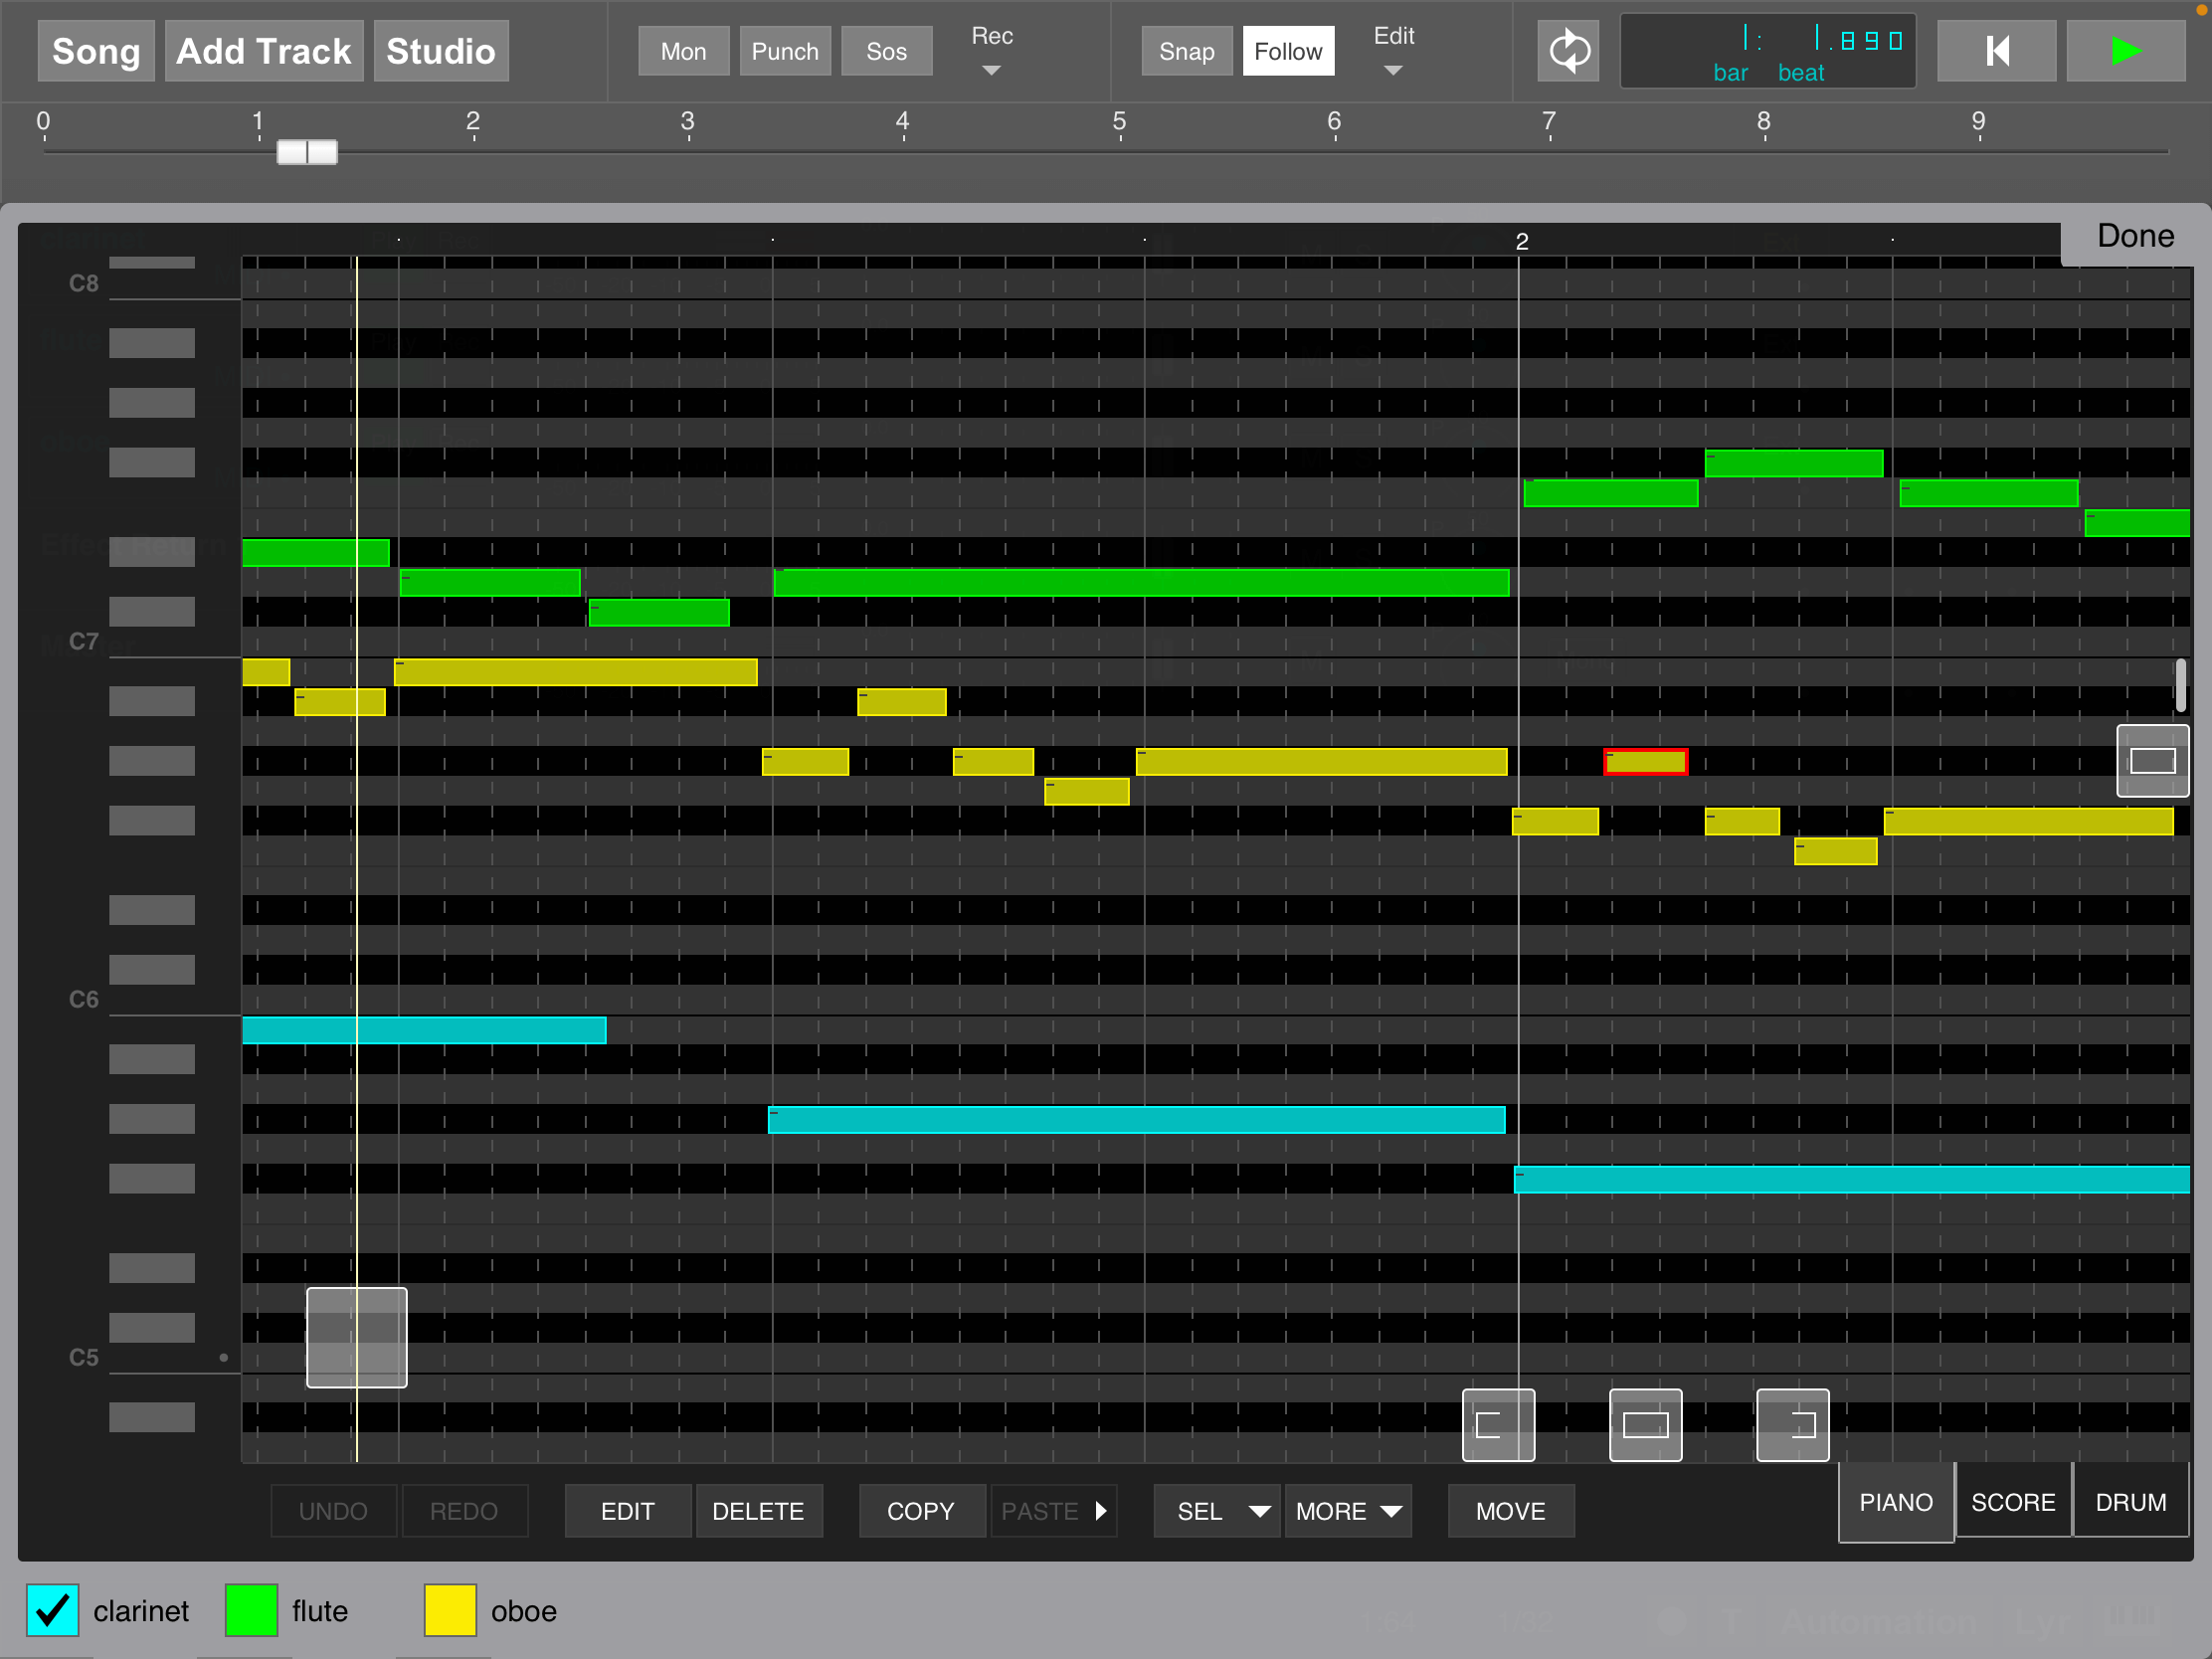 MultitrackStudio for iPad - Multi MIDI Editor (pianoroll)